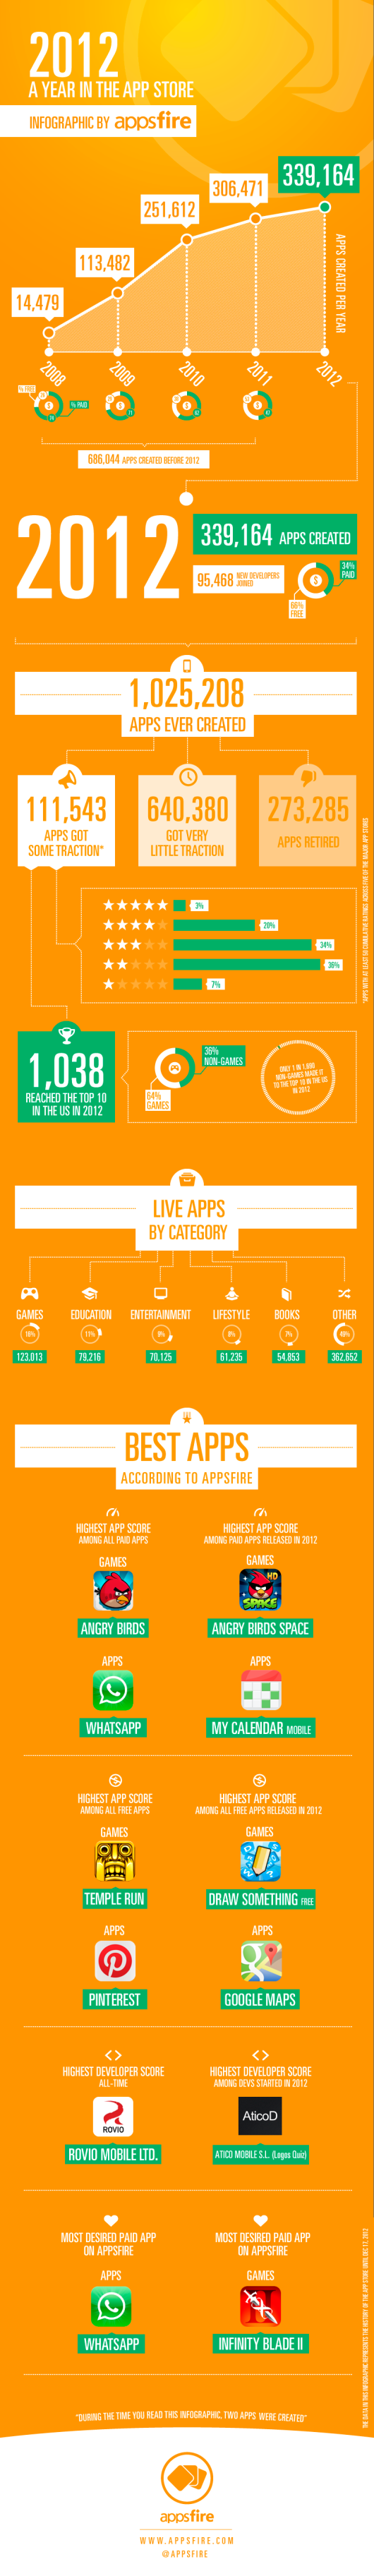 Appsfire-2012-A-Year-in-the-App-Store1